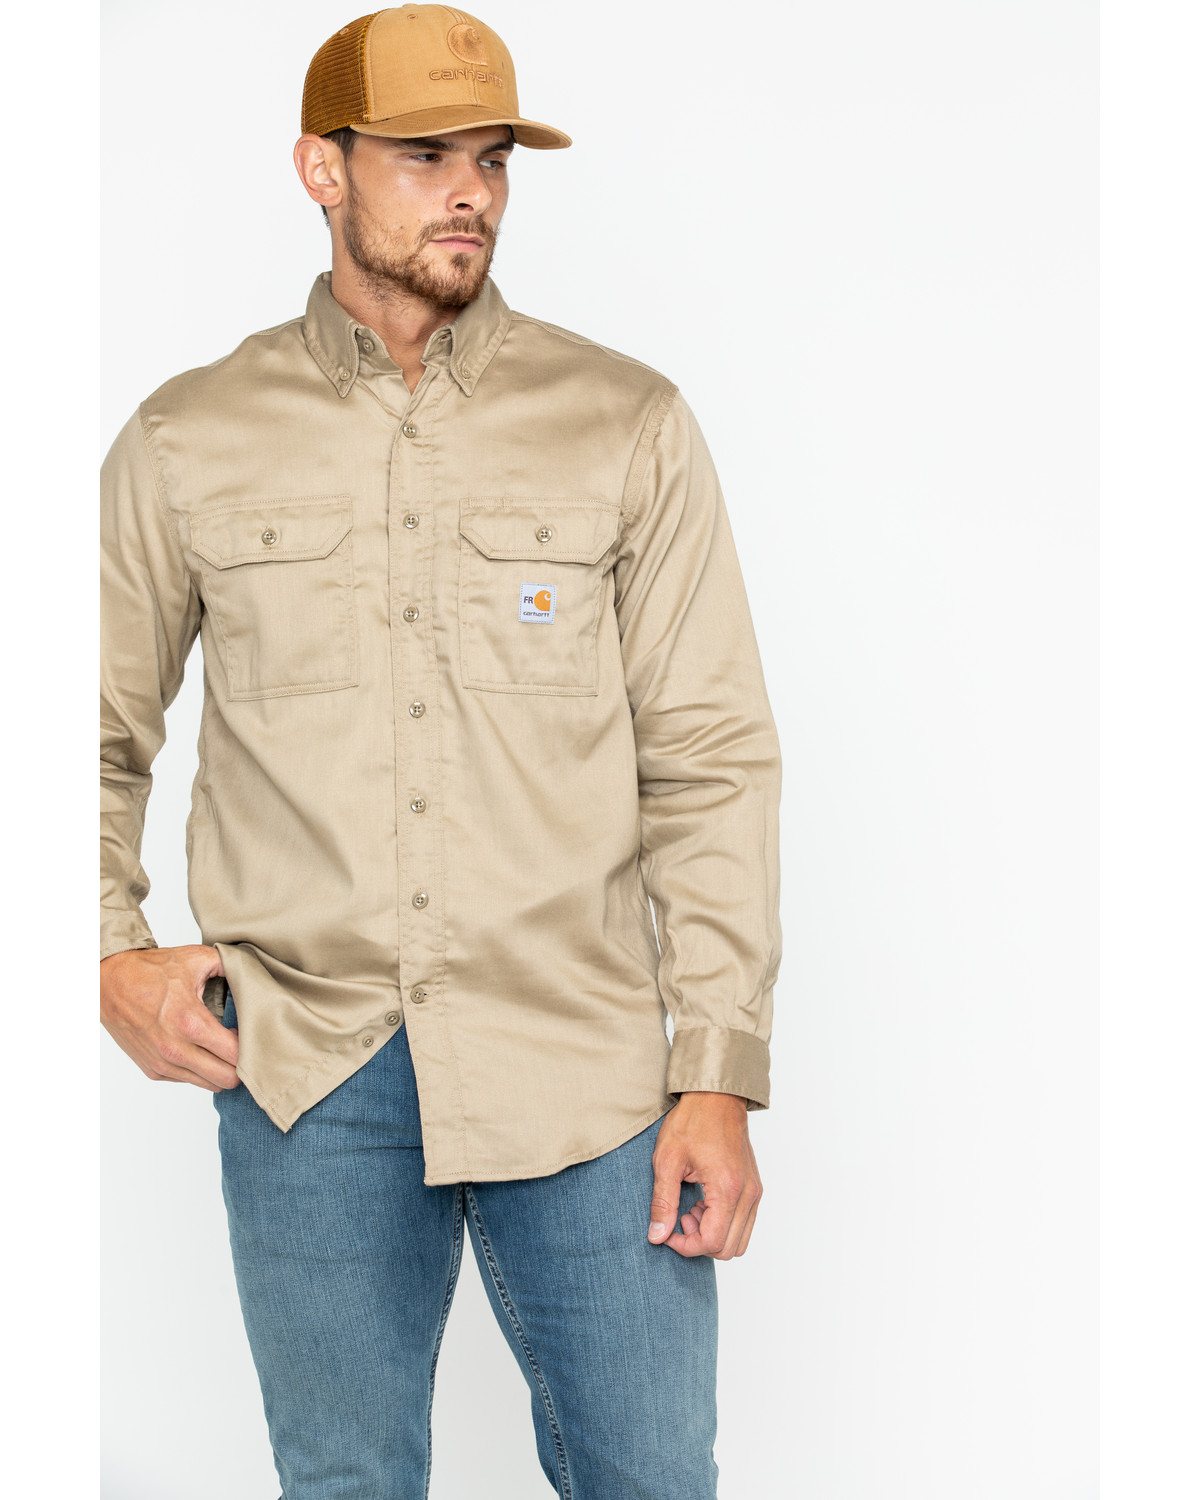 0e948a30225 Carhartt Mens Snap Front Twill Work Shirt - BCD Tofu House